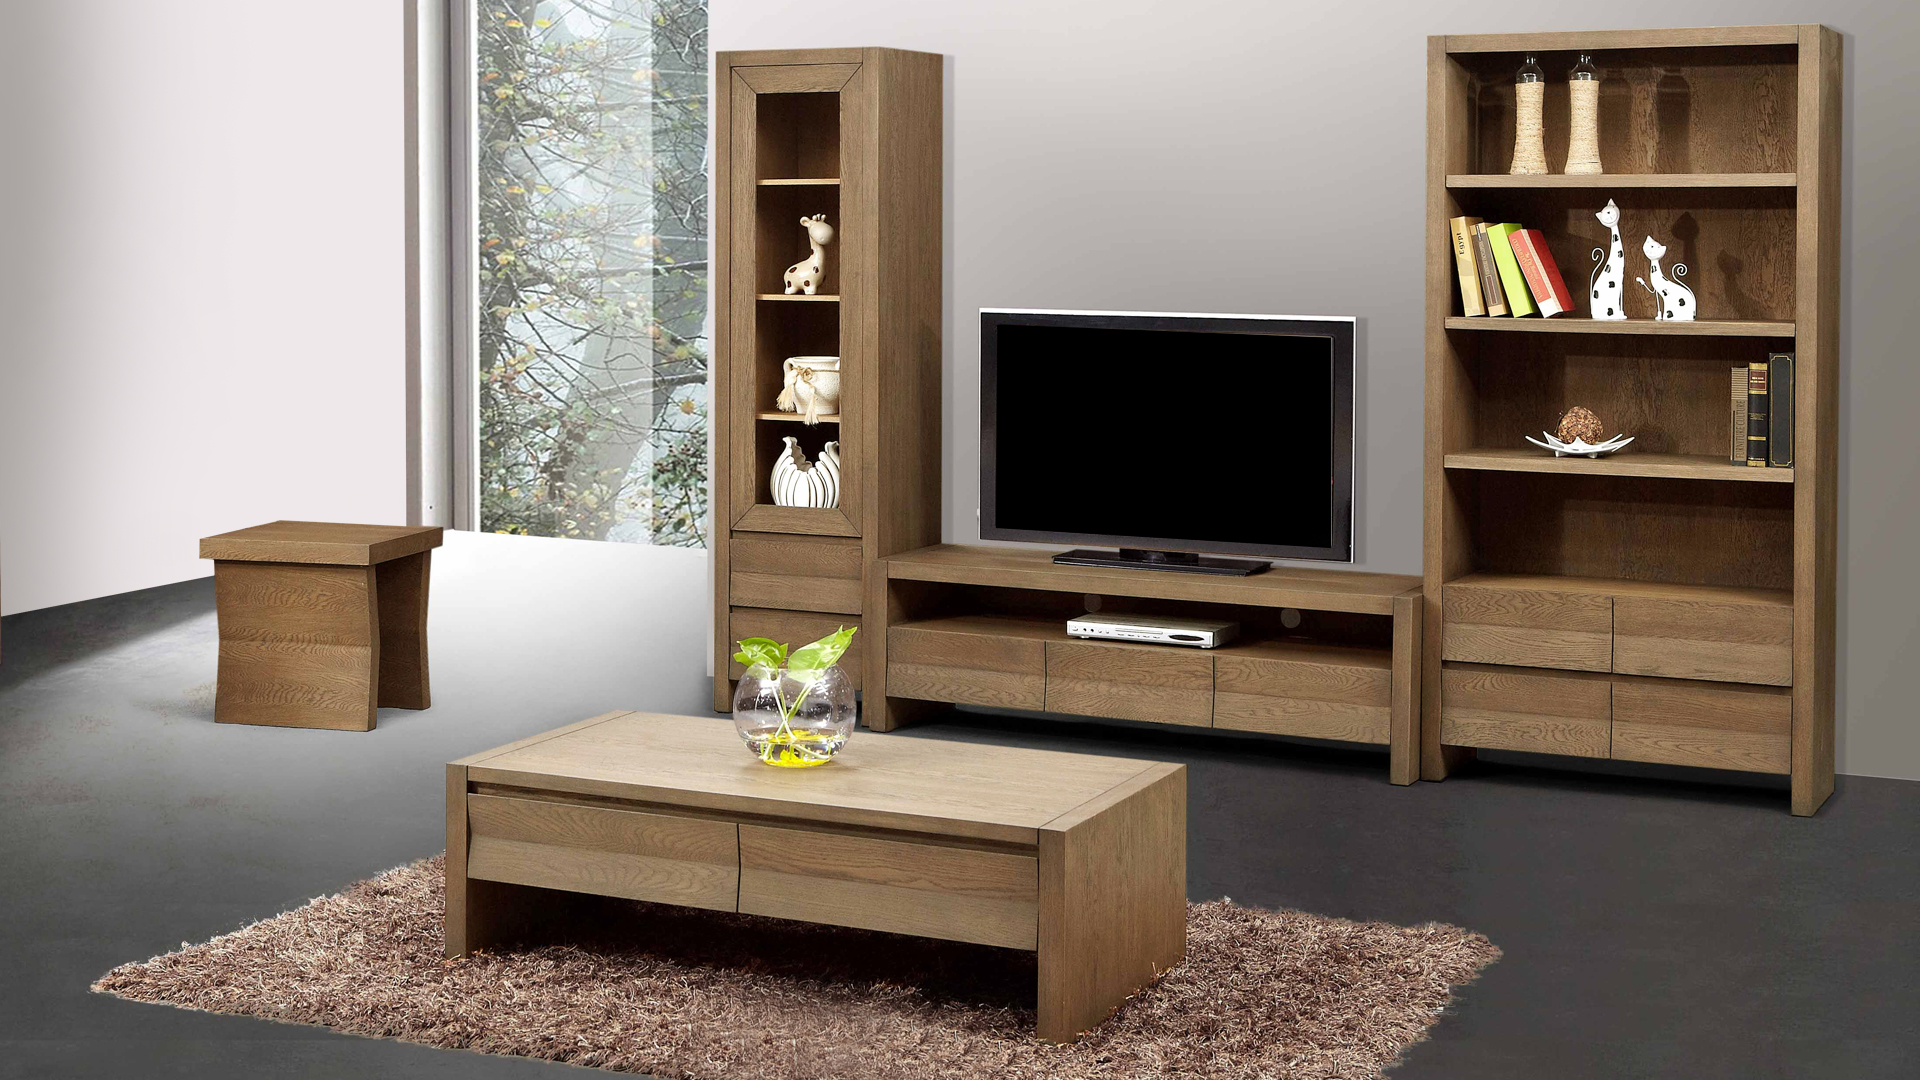 le blog mobiliermoss zoom sur les bons plans des soldes. Black Bedroom Furniture Sets. Home Design Ideas